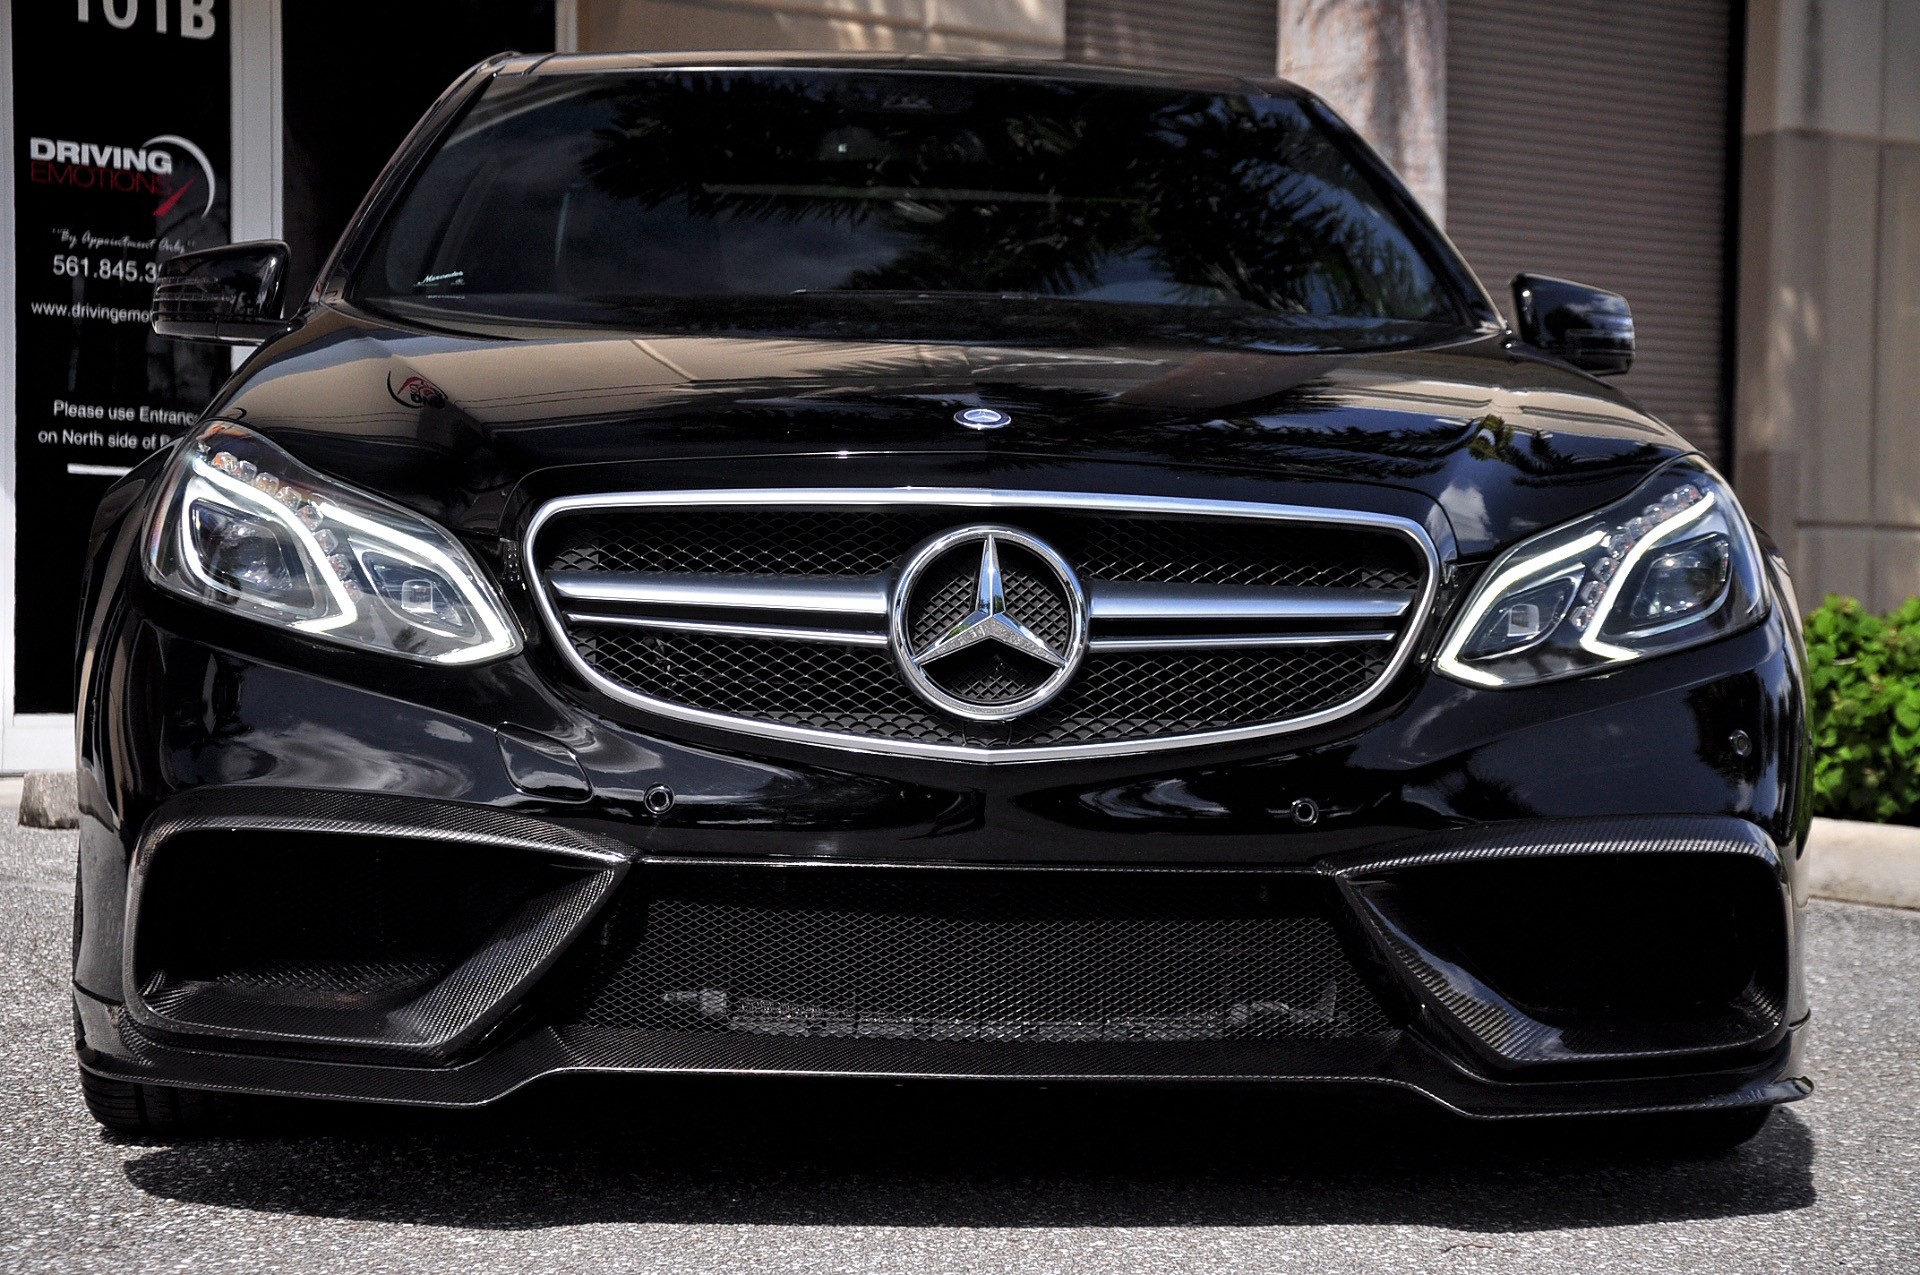 2014 mercedes benz e63 amg s renntech e63 amg s model stock 5904 for sale near lake park fl. Black Bedroom Furniture Sets. Home Design Ideas